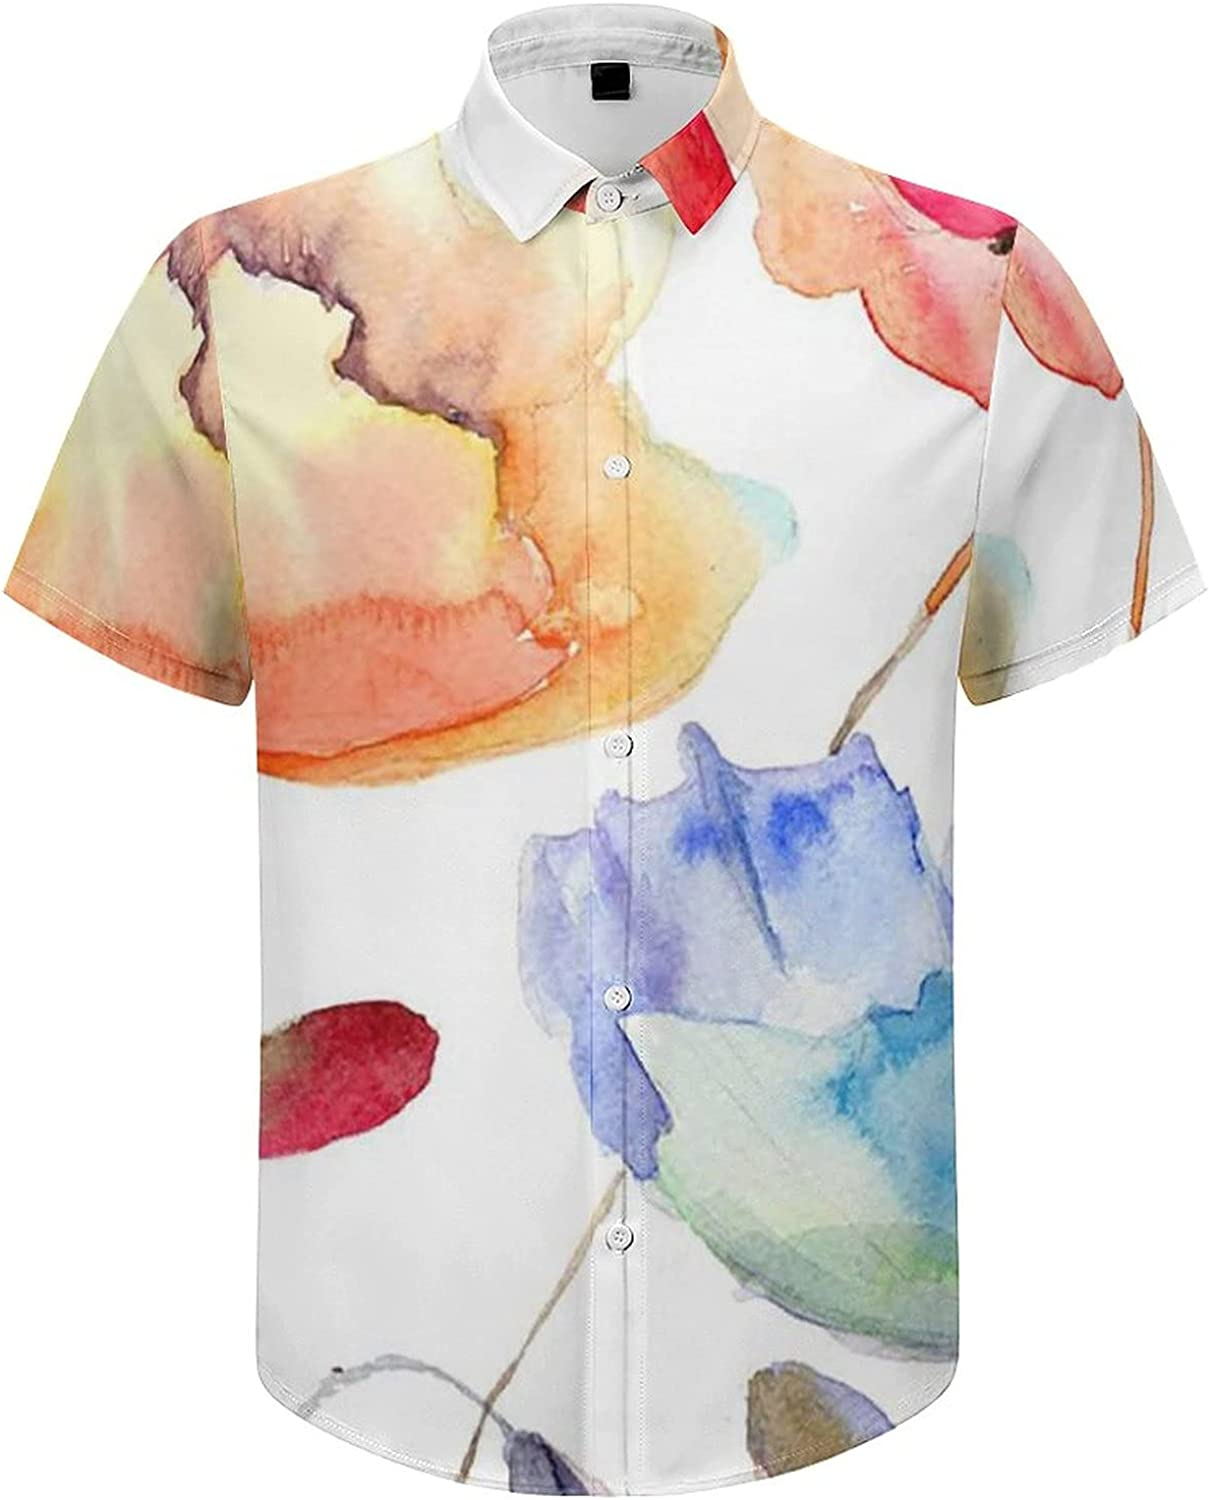 Kimisoy Men's Short Sleeve Watercolor Flowers Summer Sales of SALE items from new works Shirt Max 59% OFF